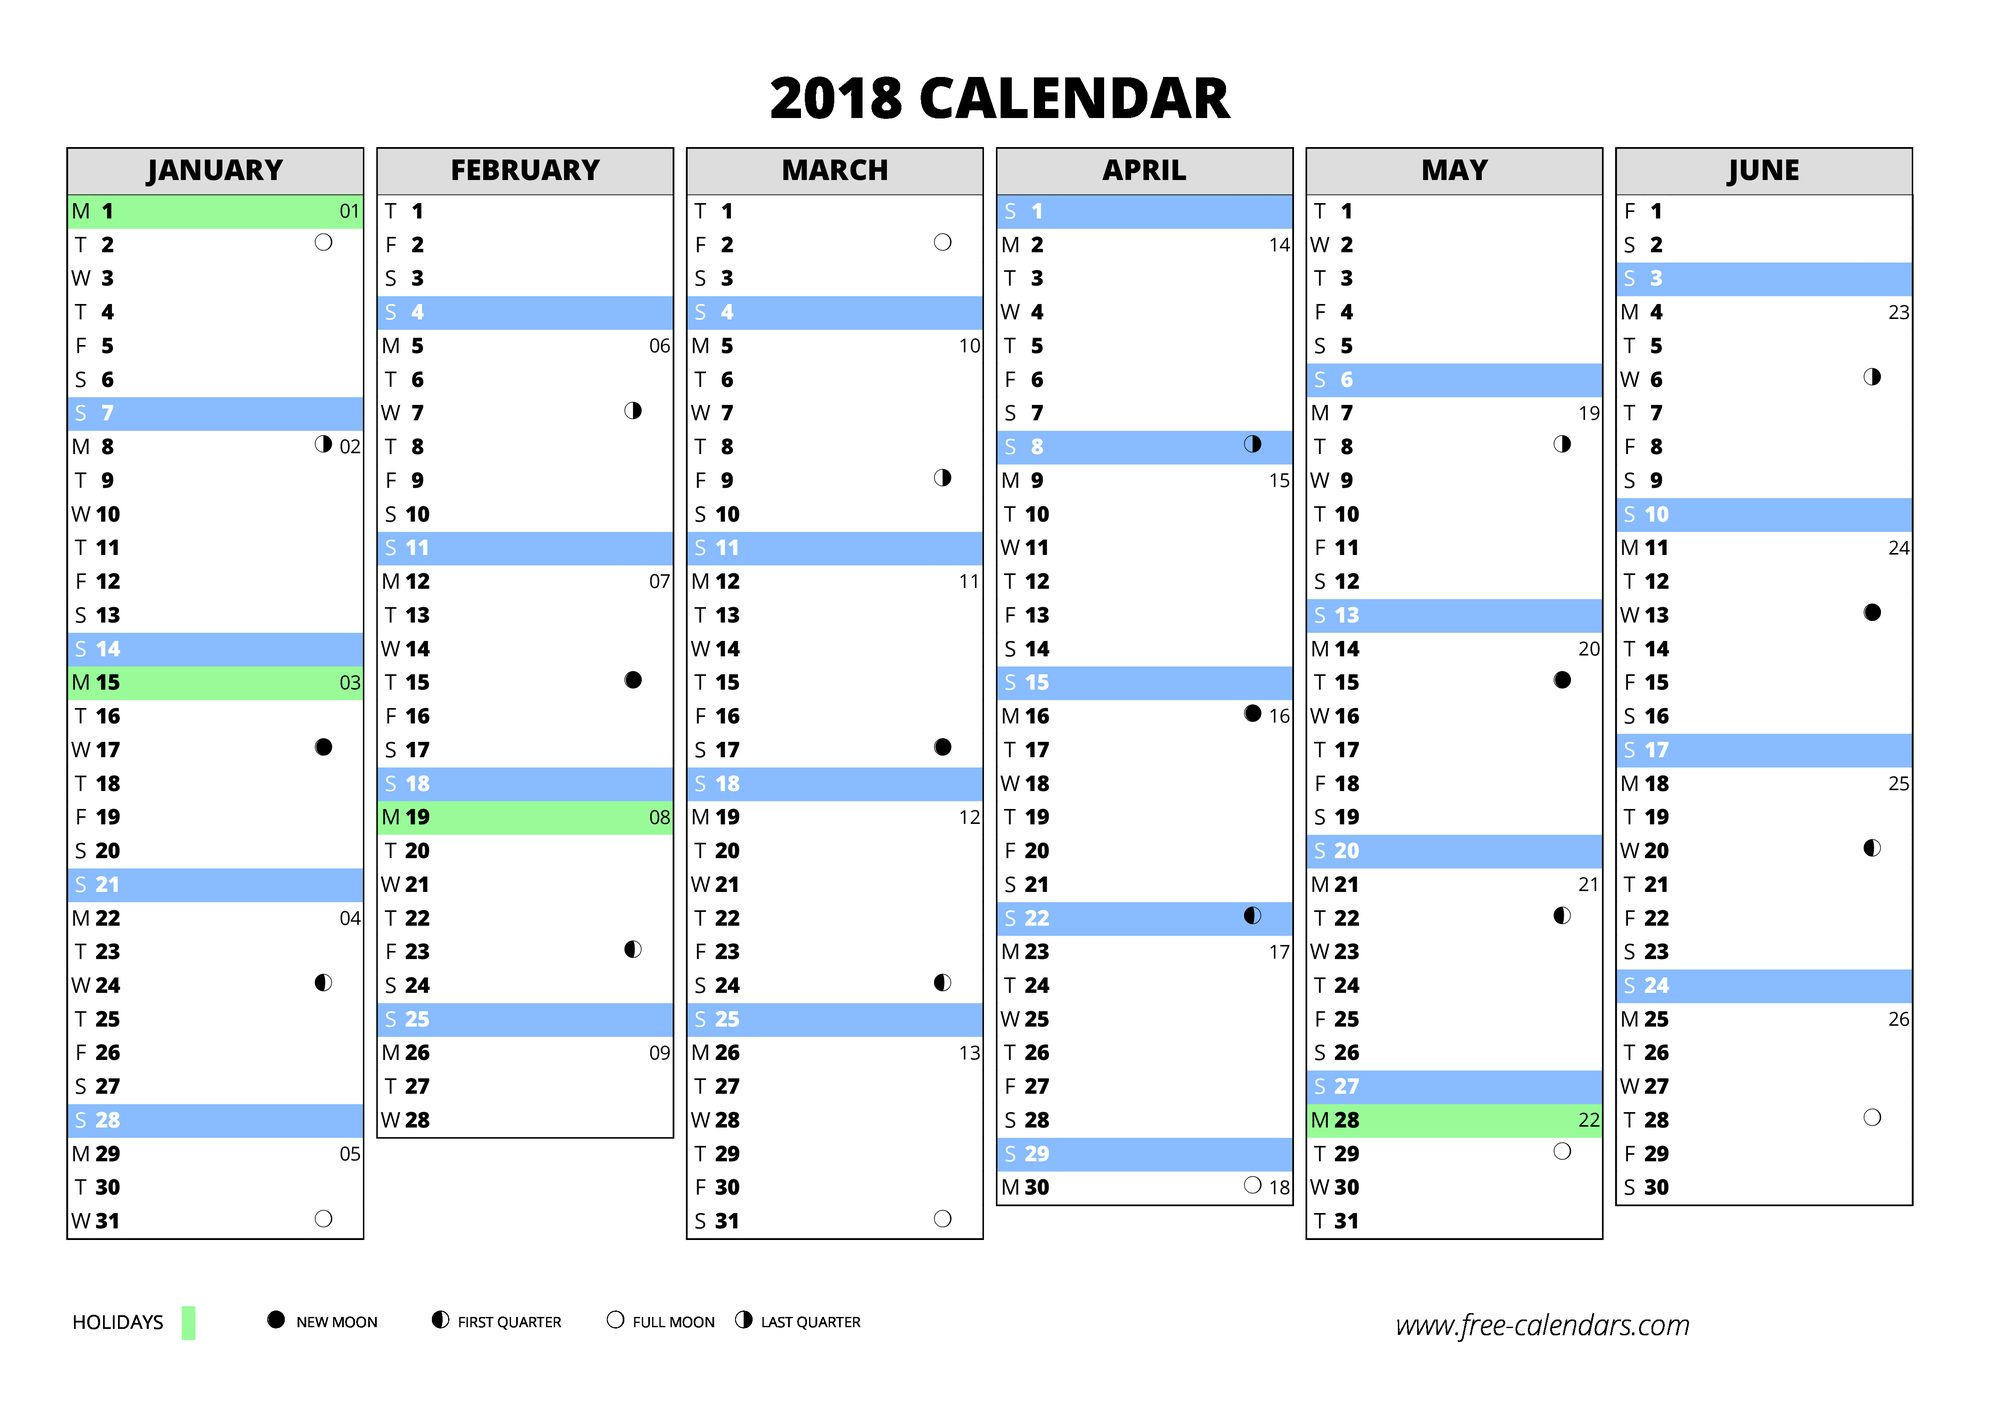 2018 blank first semester 2018 blank second semester portait 2018 calendar